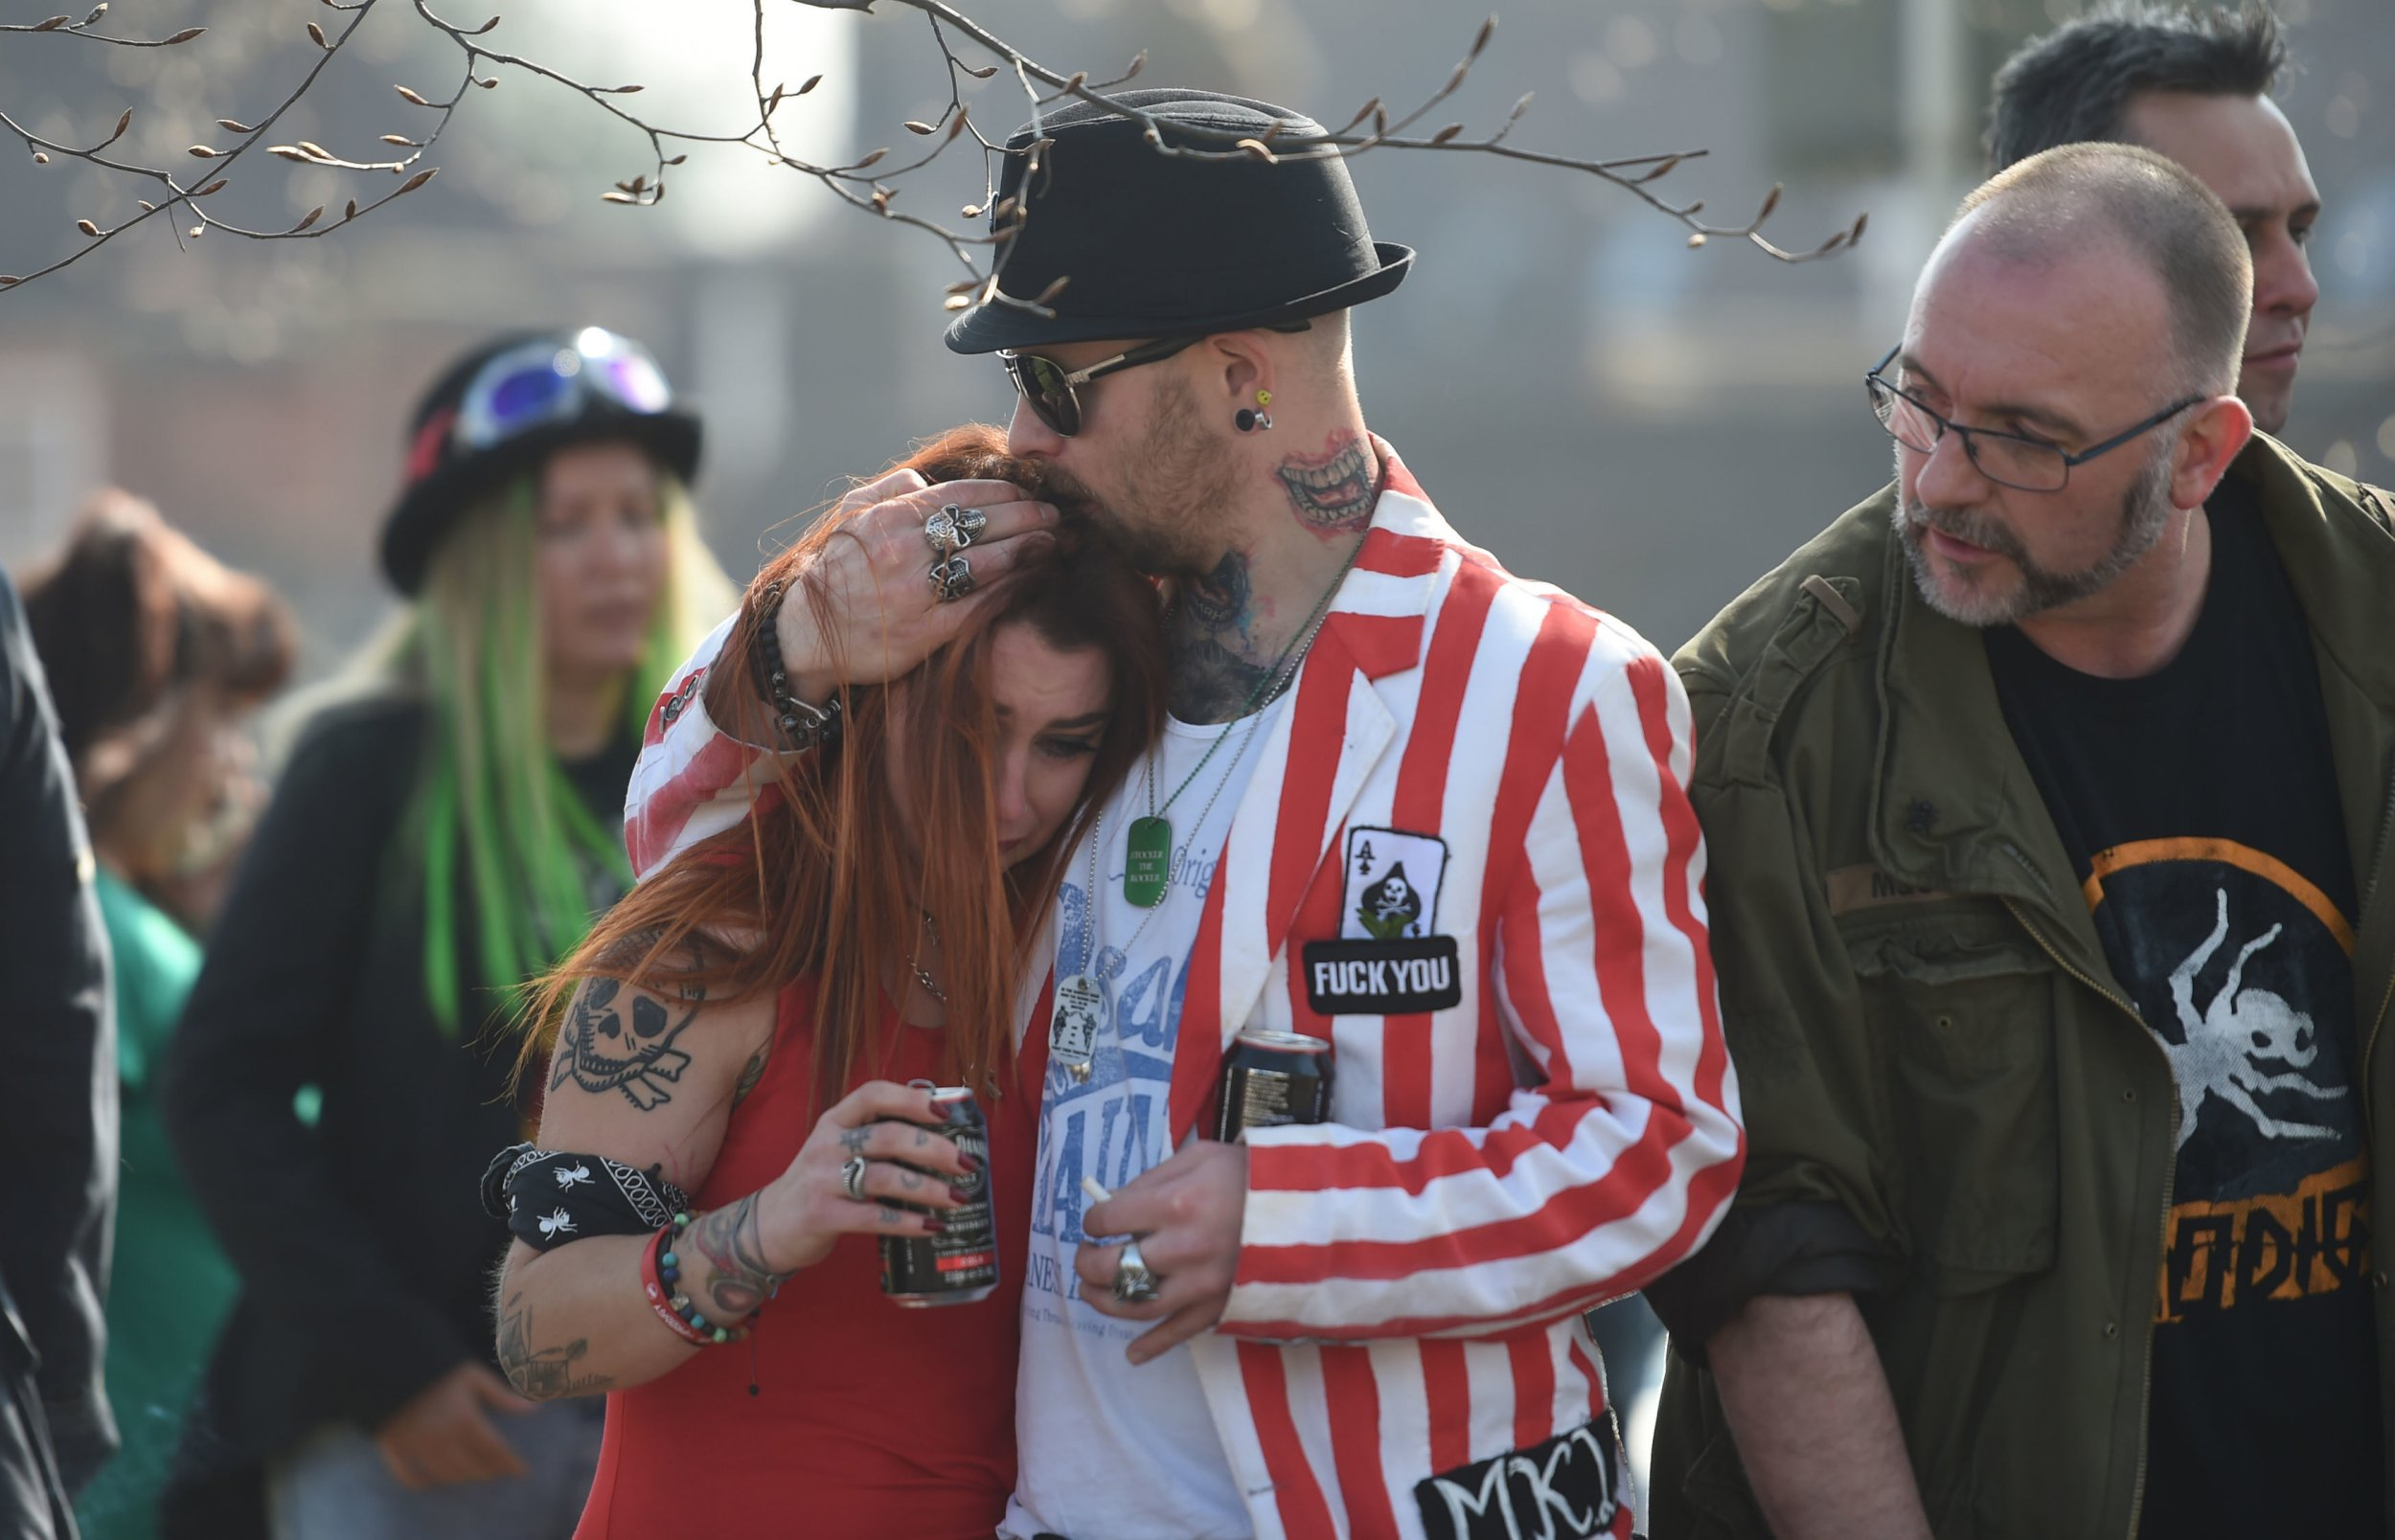 Fans of Keith Flint fill the streets of Braintree as the late singer's funeral procession makes its way to St Mary's Church in Bocking, Essex. PRESS ASSOCIATION Photo. Picture date: Friday March 29, 2019. See PA story FUNERAL Flint. Photo credit should read: Joe Giddens/PA Wire